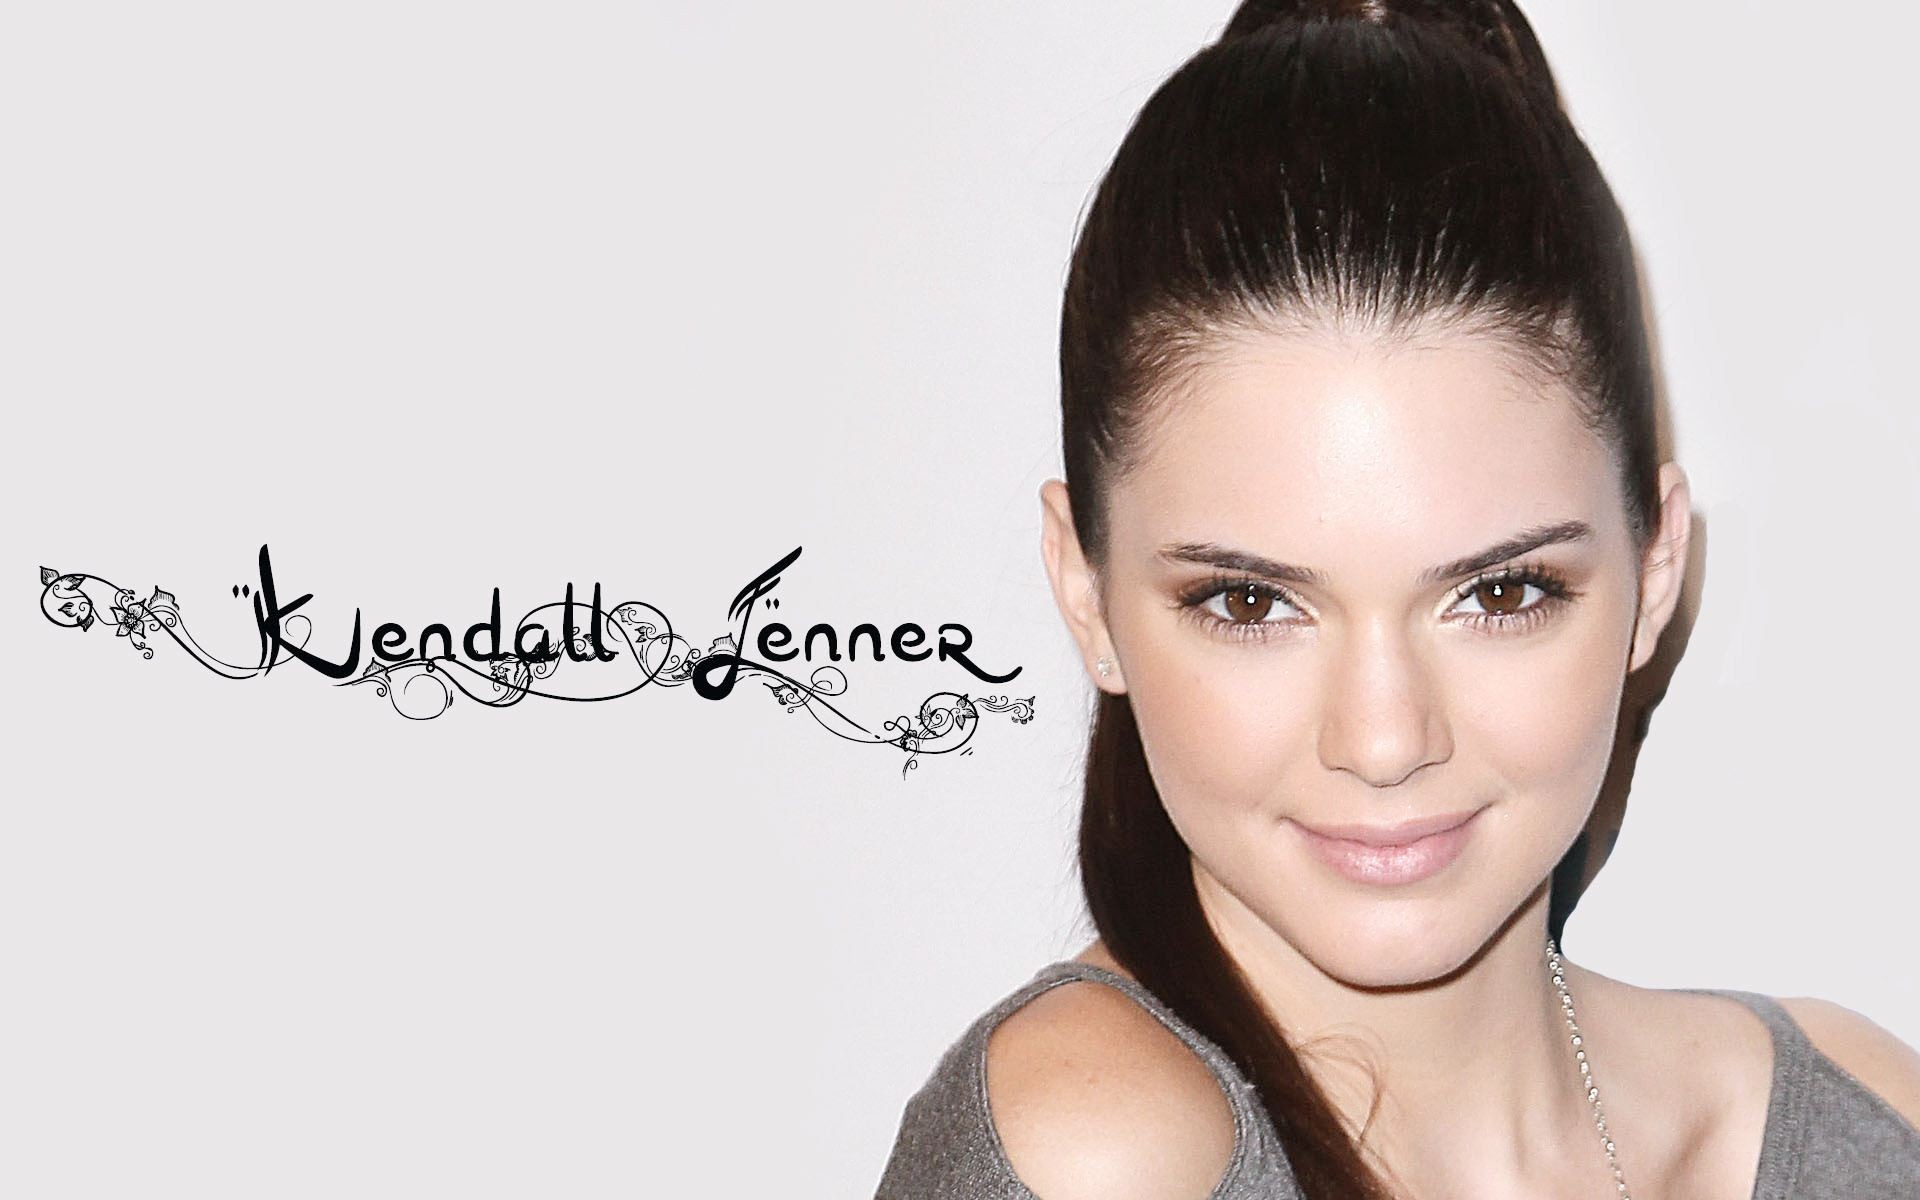 1920x1200 - Kendall Jenner Wallpapers 11